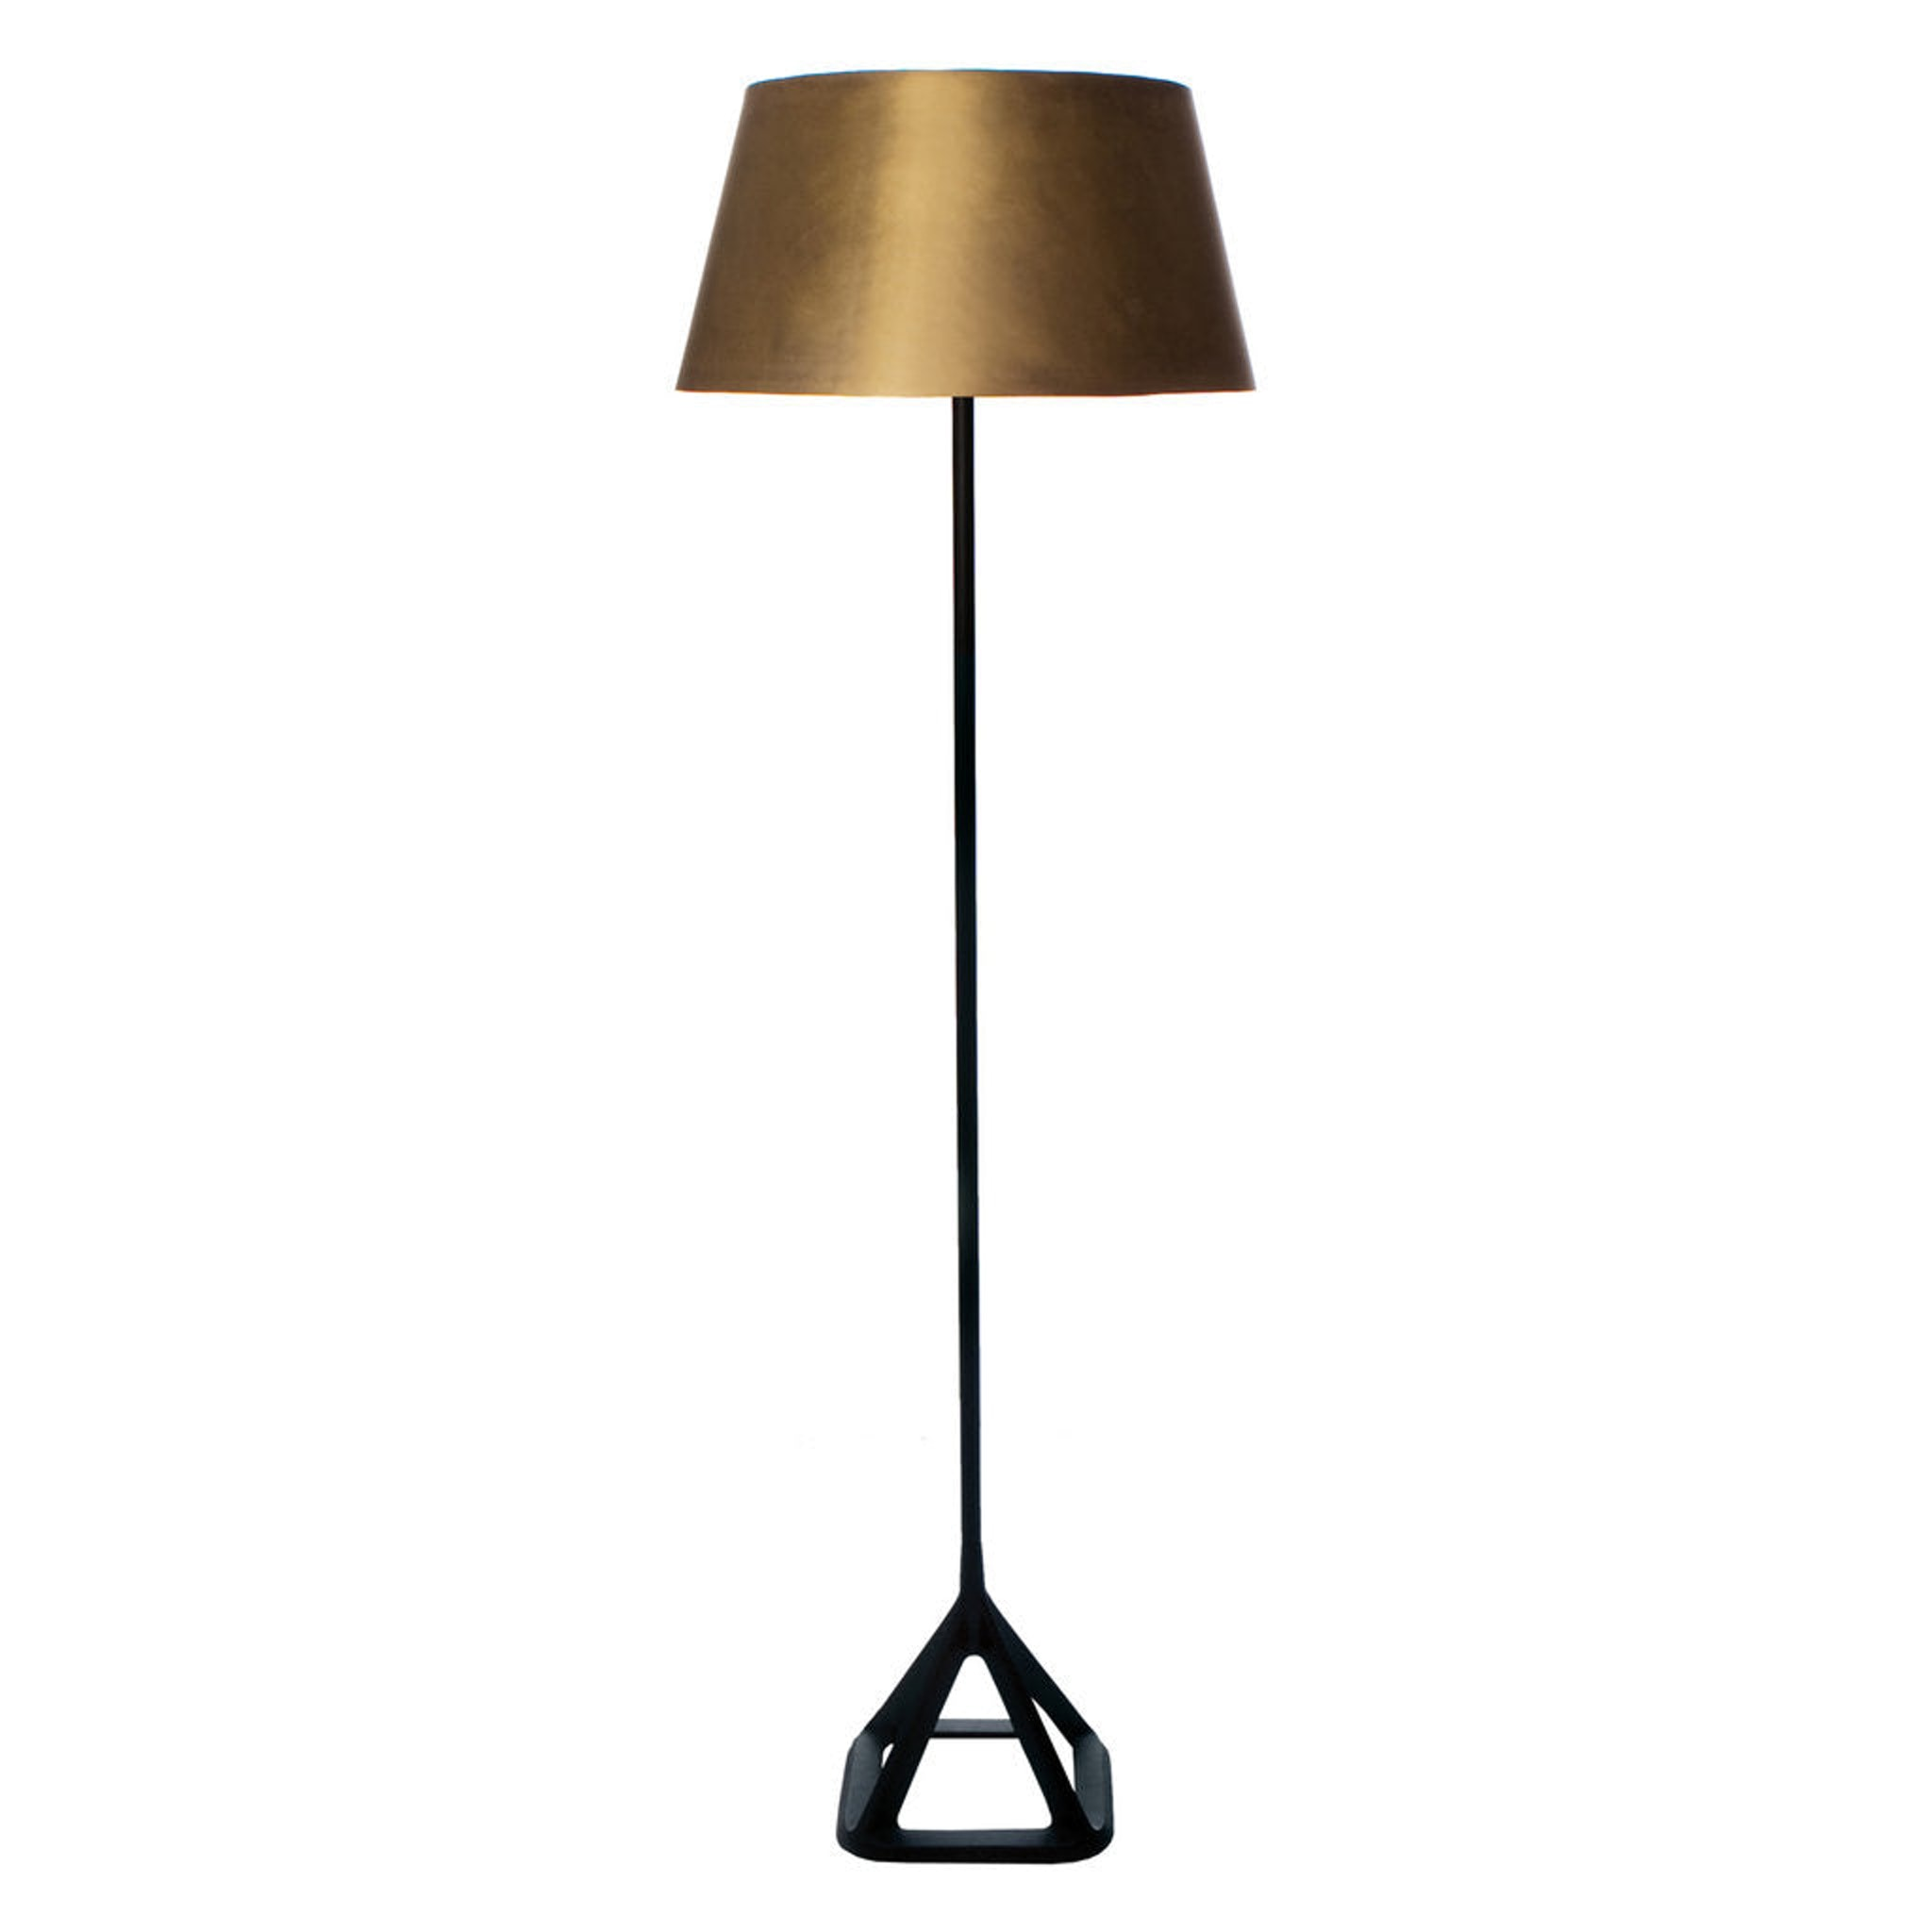 Base Brass Floor Light by Tom Dixon